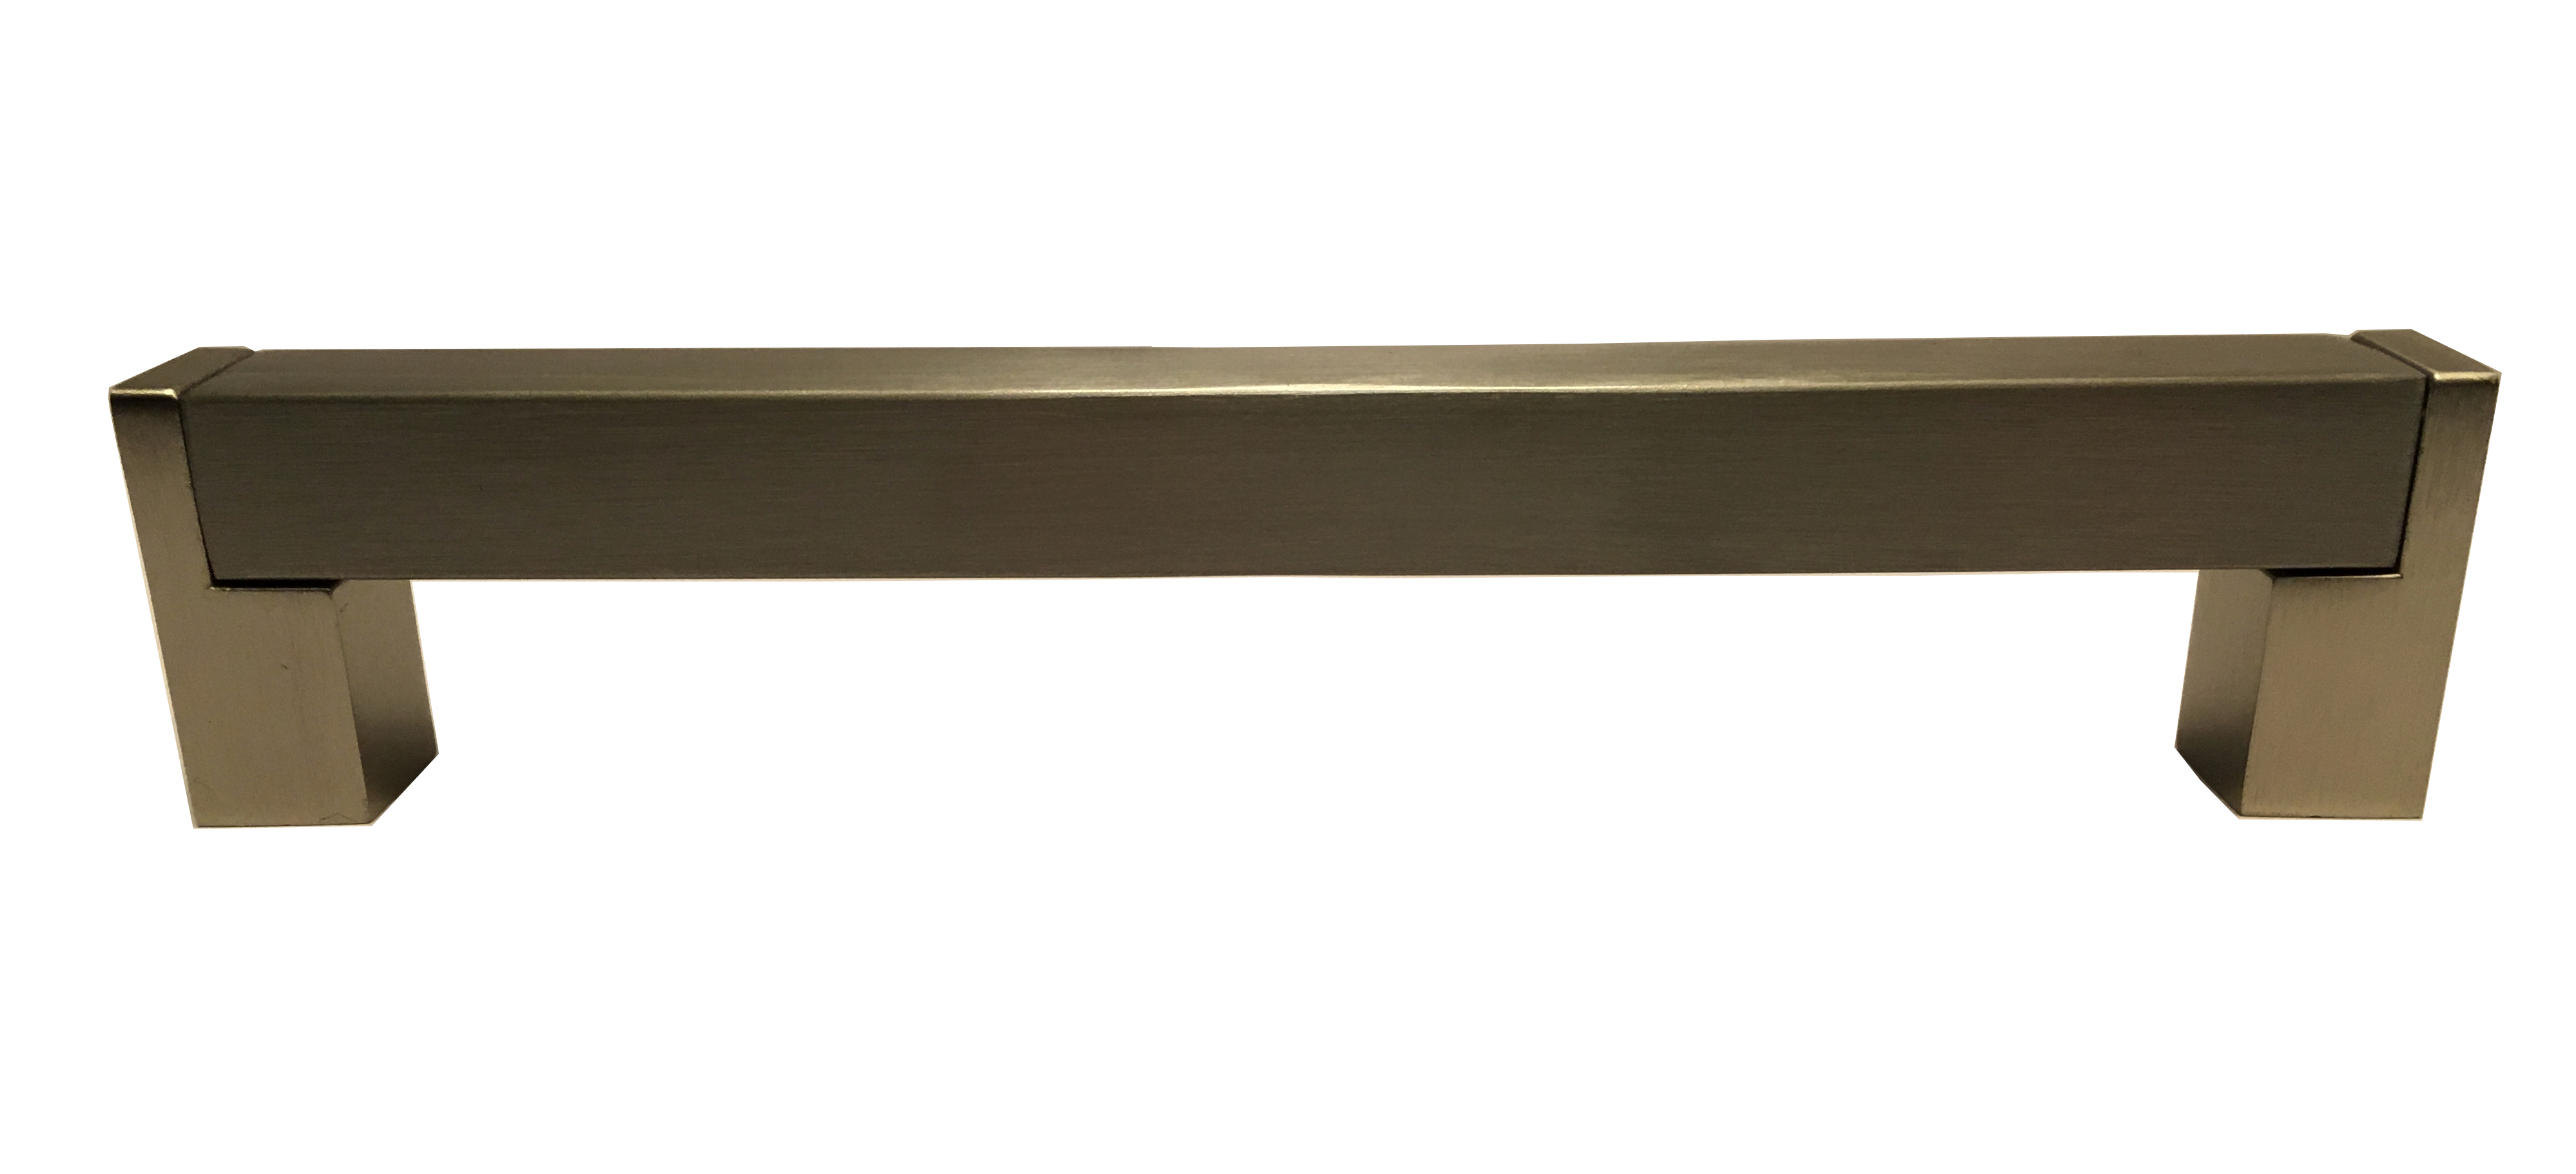 UZ-334160-06 Side View for Kitchen Cabinets